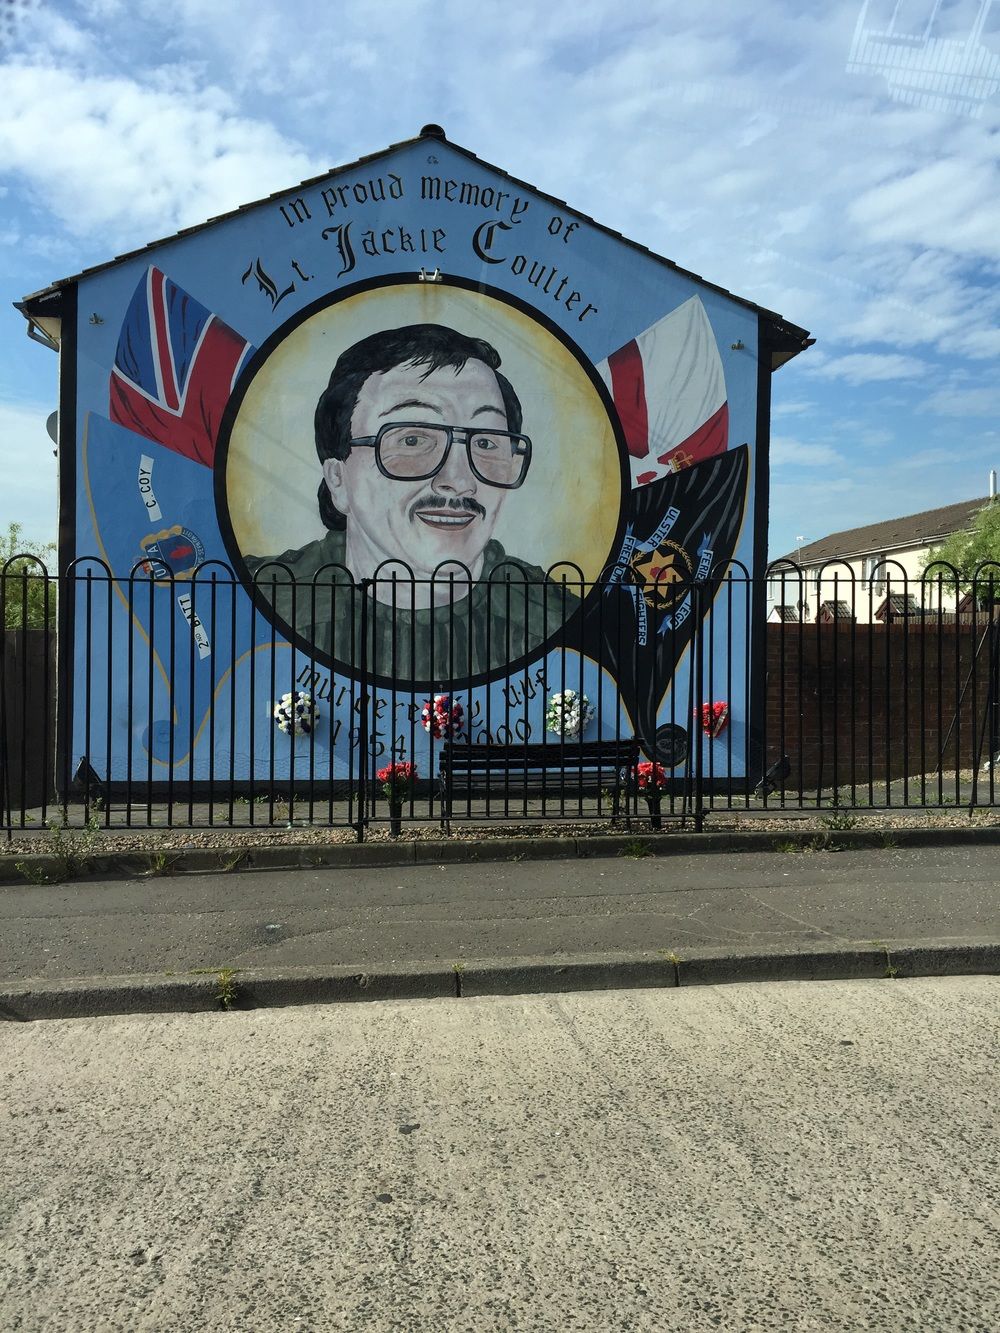 Memorial Mural depicting Jackie Coulter, a Loyalist(Protestant), killed in 2000.